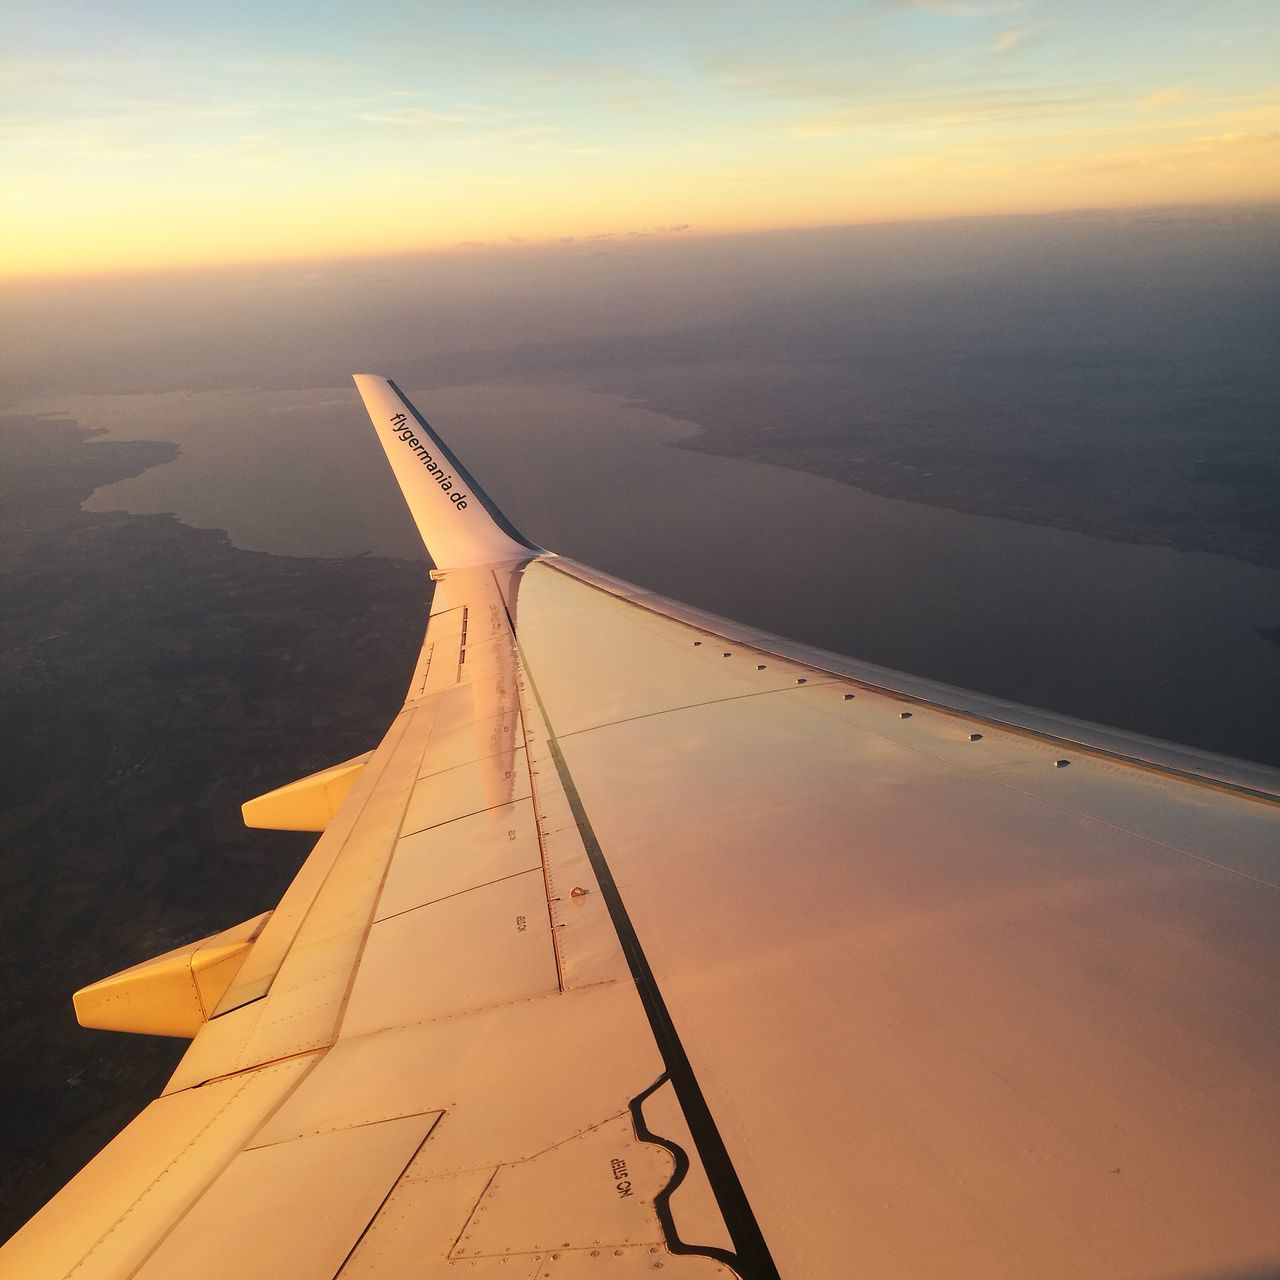 airplane, aerial view, journey, transportation, airplane wing, travel, aircraft wing, scenics, mode of transport, nature, flying, air vehicle, beauty in nature, no people, sunset, sky, cloudscape, outdoors, cloud - sky, mid-air, water, tranquil scene, tranquility, sea, vehicle part, landscape, day, jet engine, the natural world, close-up